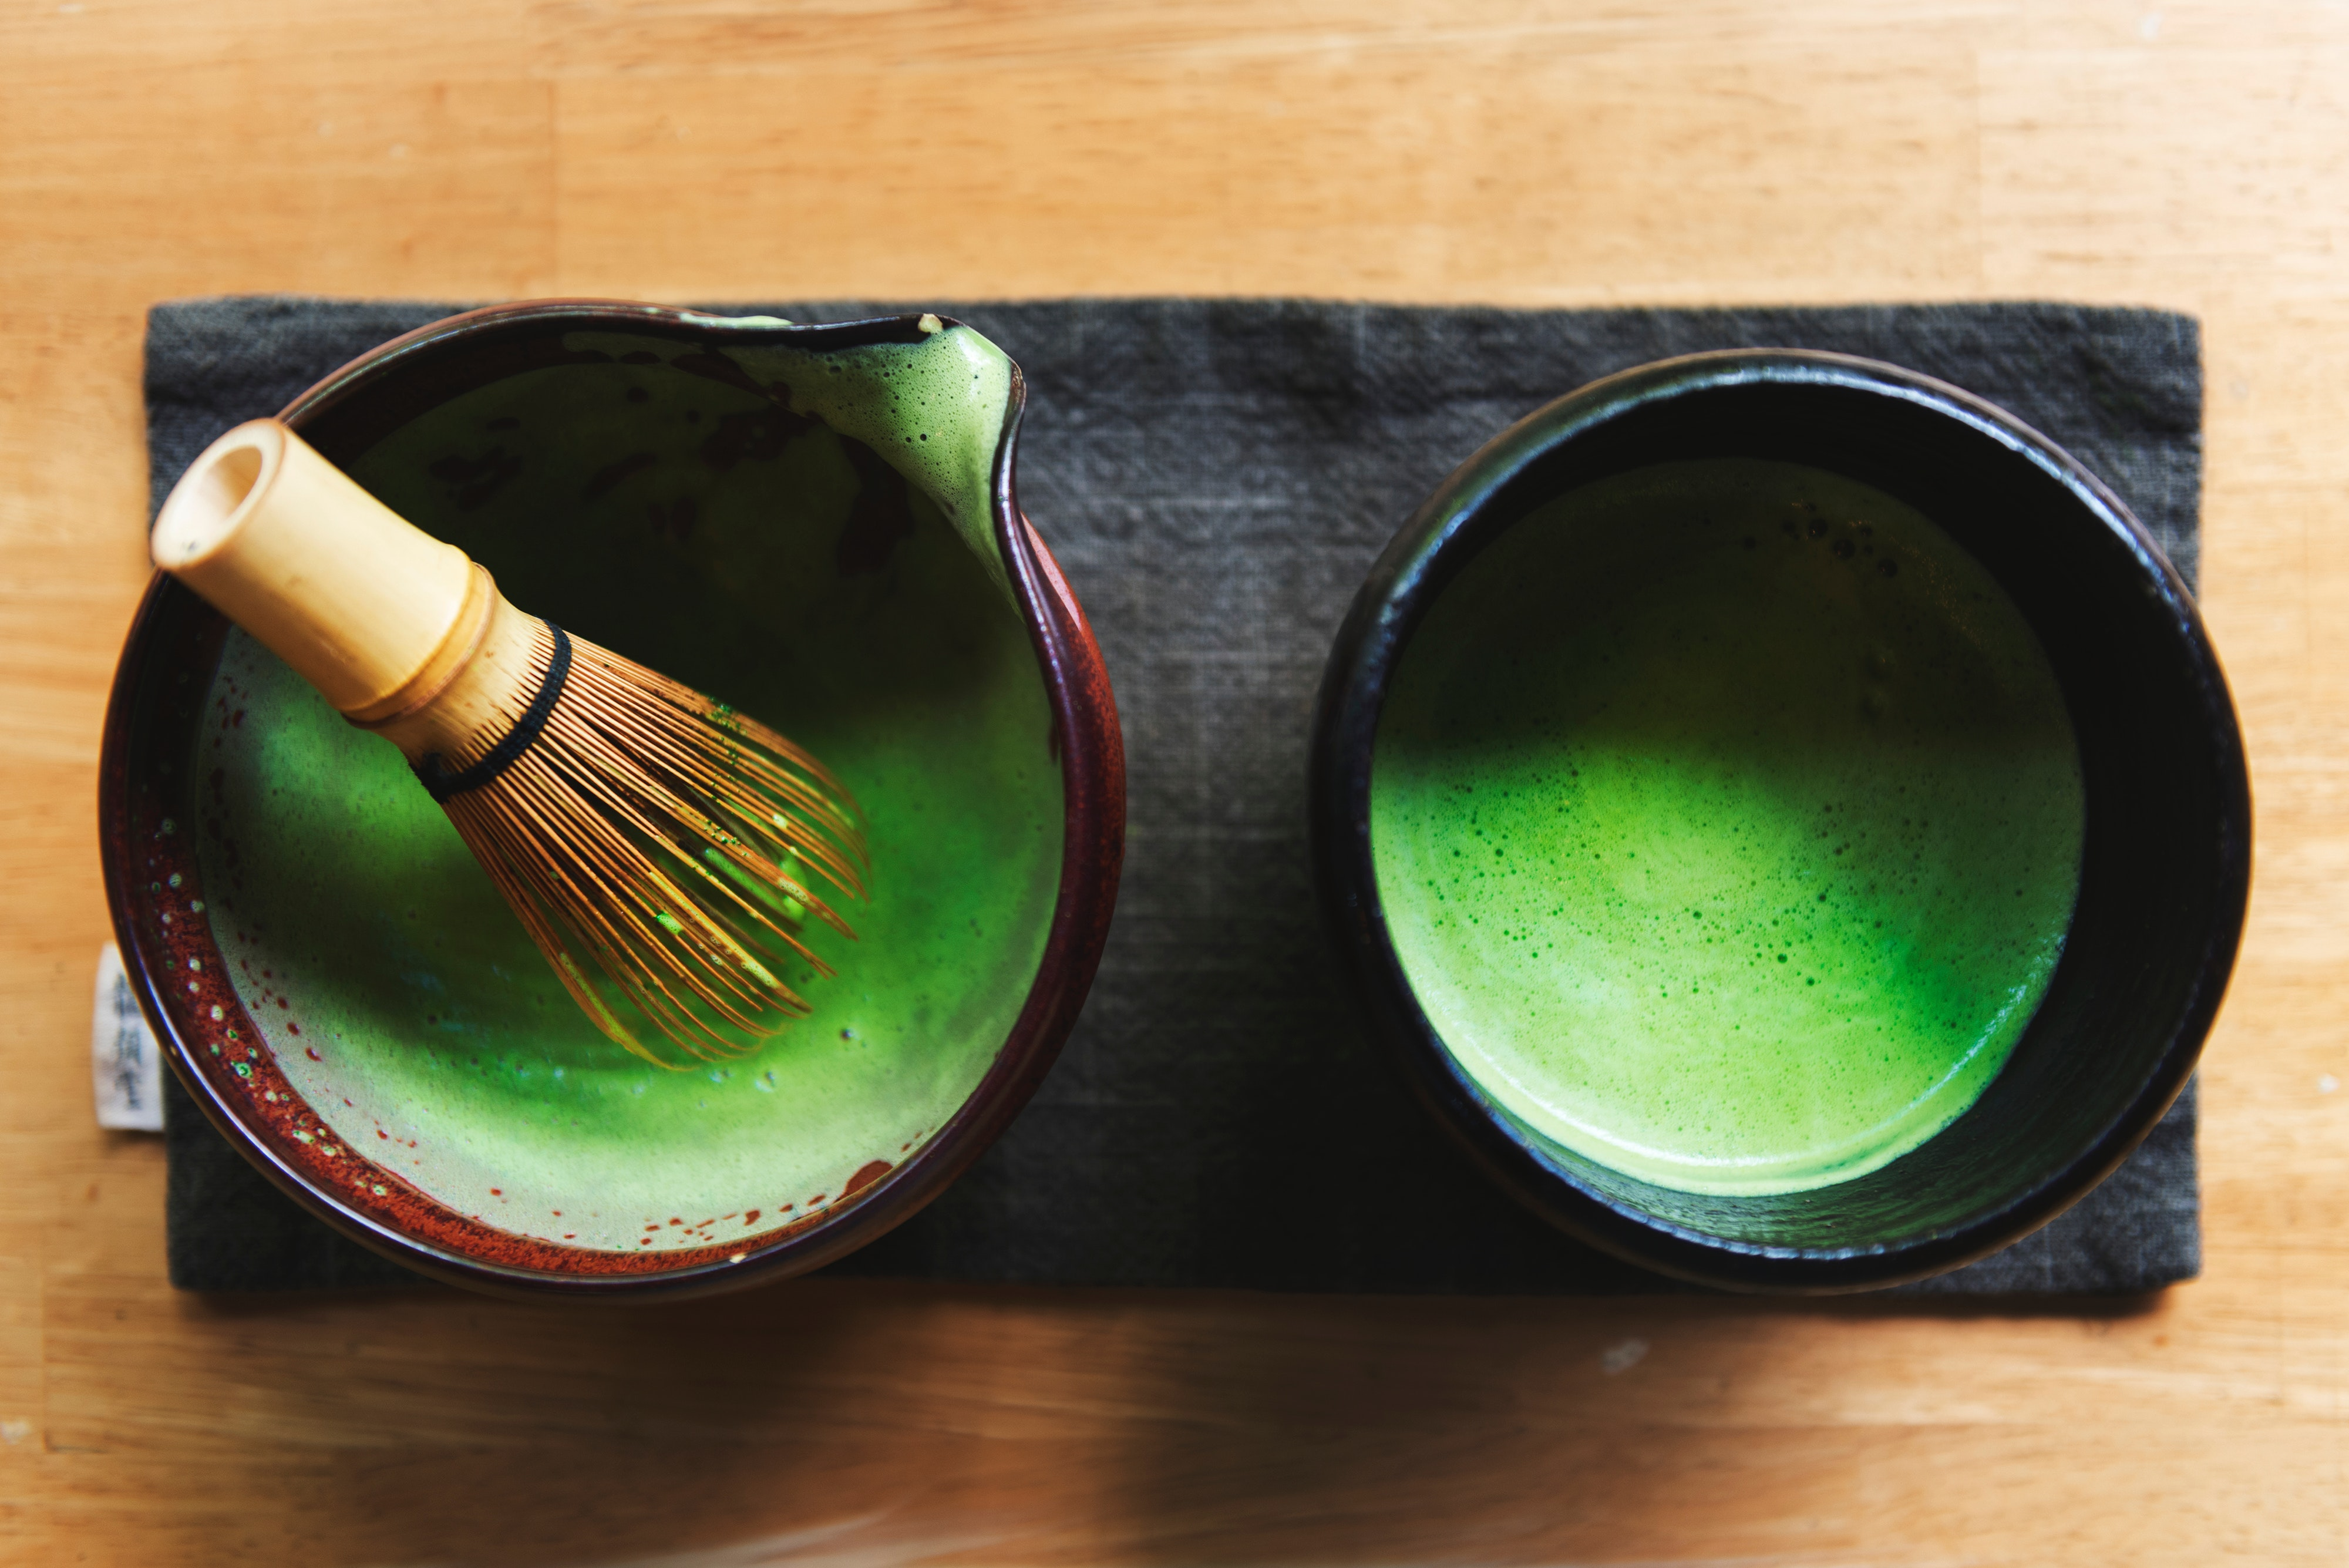 Exchange students can learn about traditional Japanese activities like the tea ceremony tradition